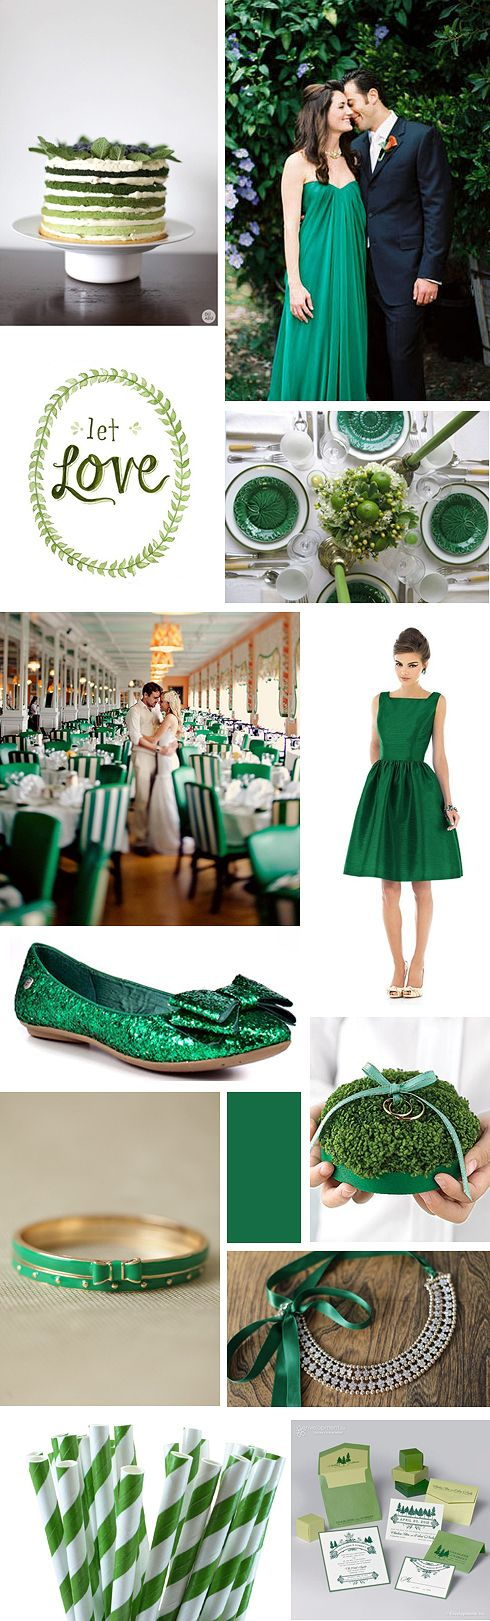 emerald wedding inspiration